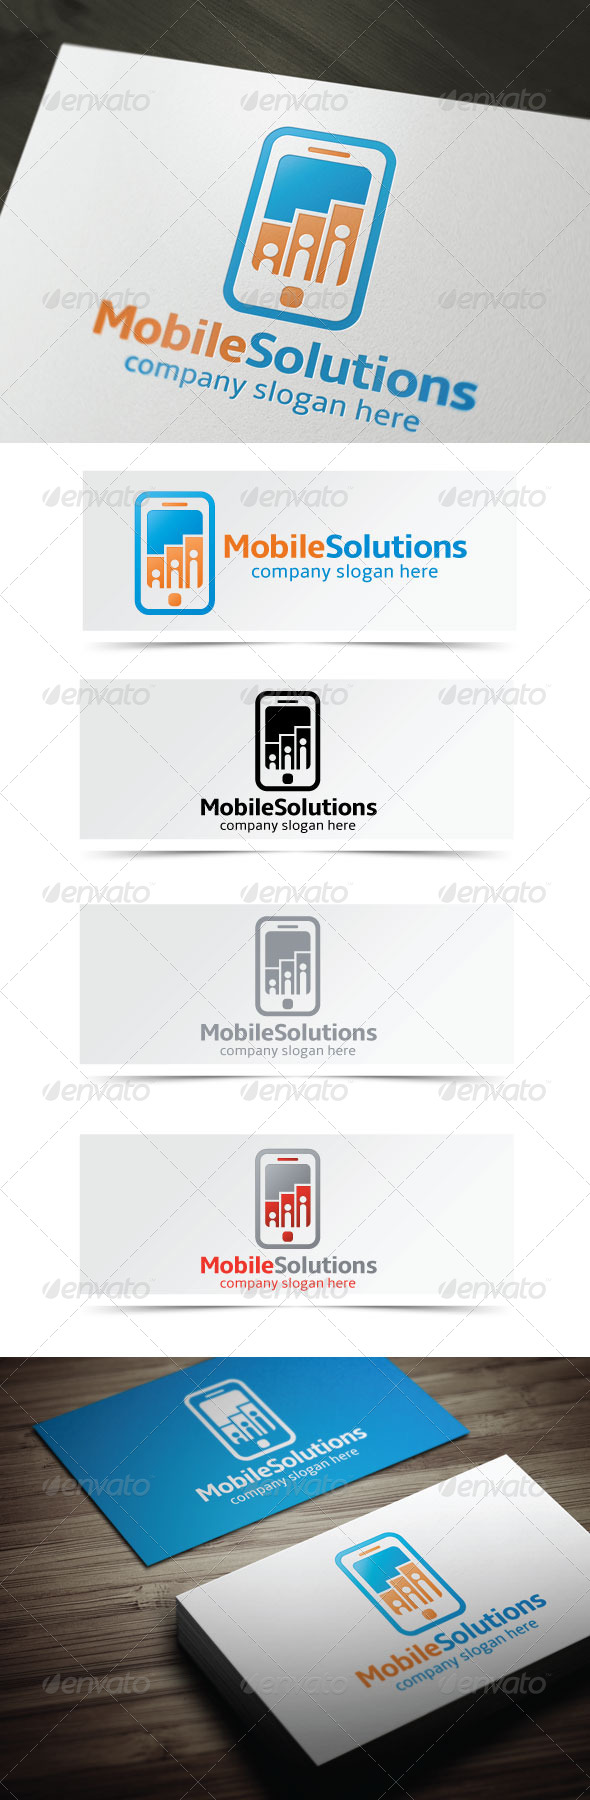 GraphicRiver Mobile Solutions 4245625